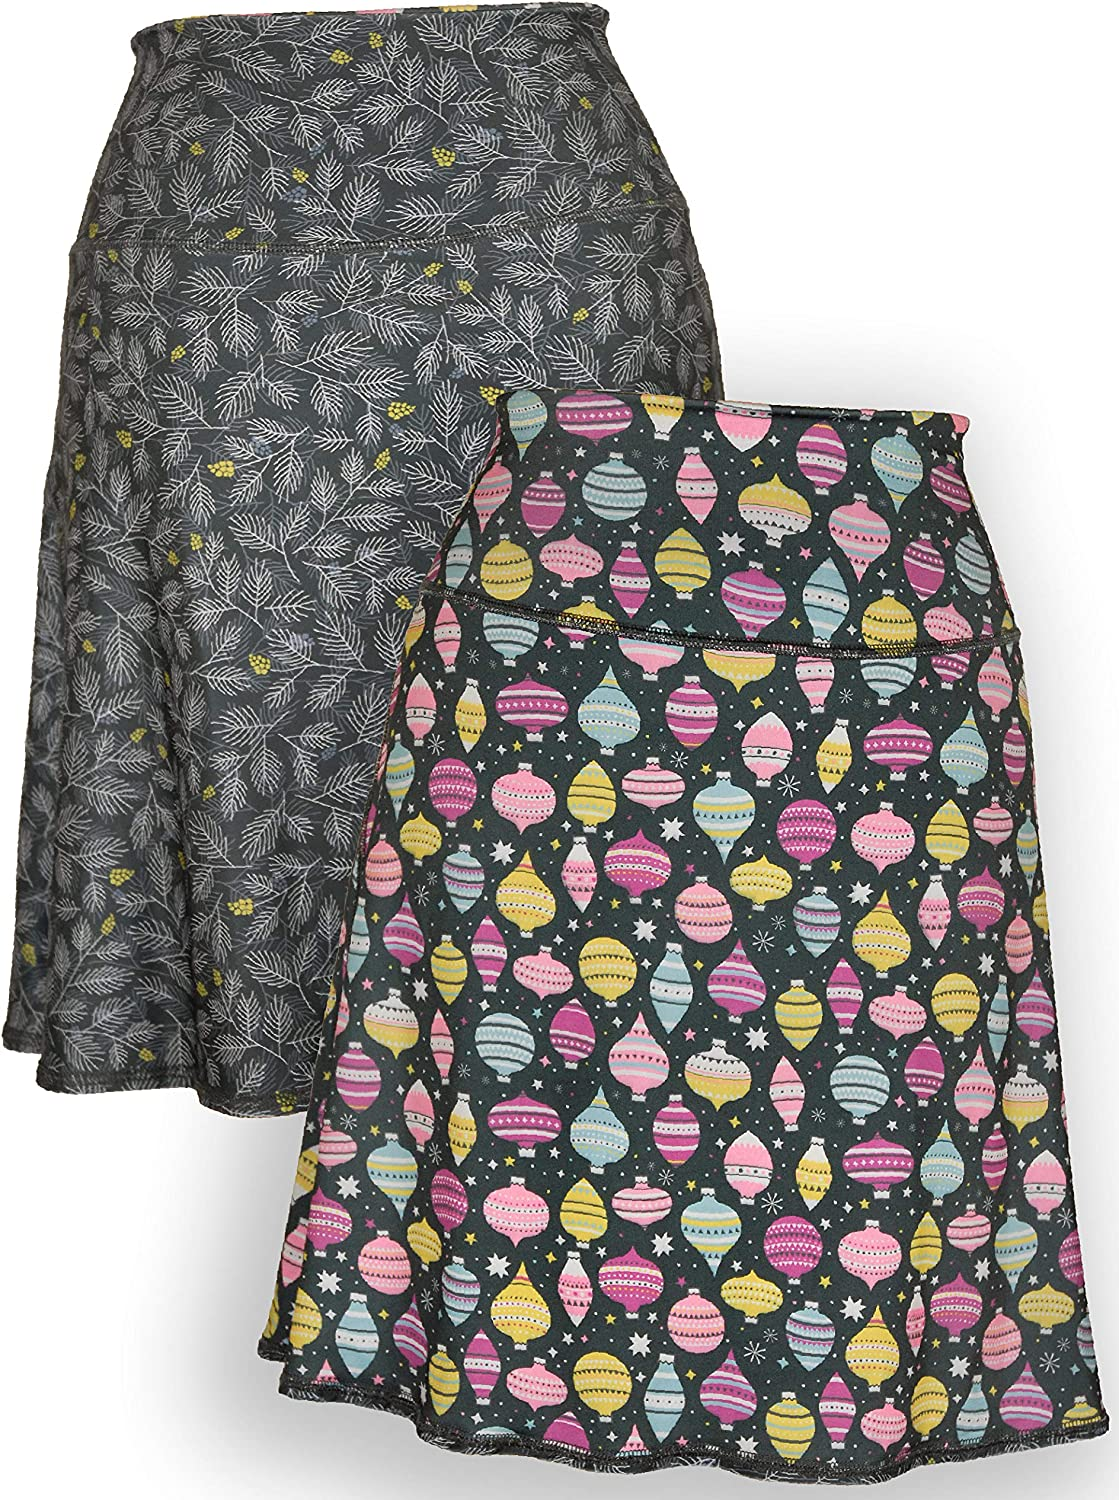 Green 3 Novelty Reversible Athleisure Skirt  Womens Recycled Skirt, Made in The USA